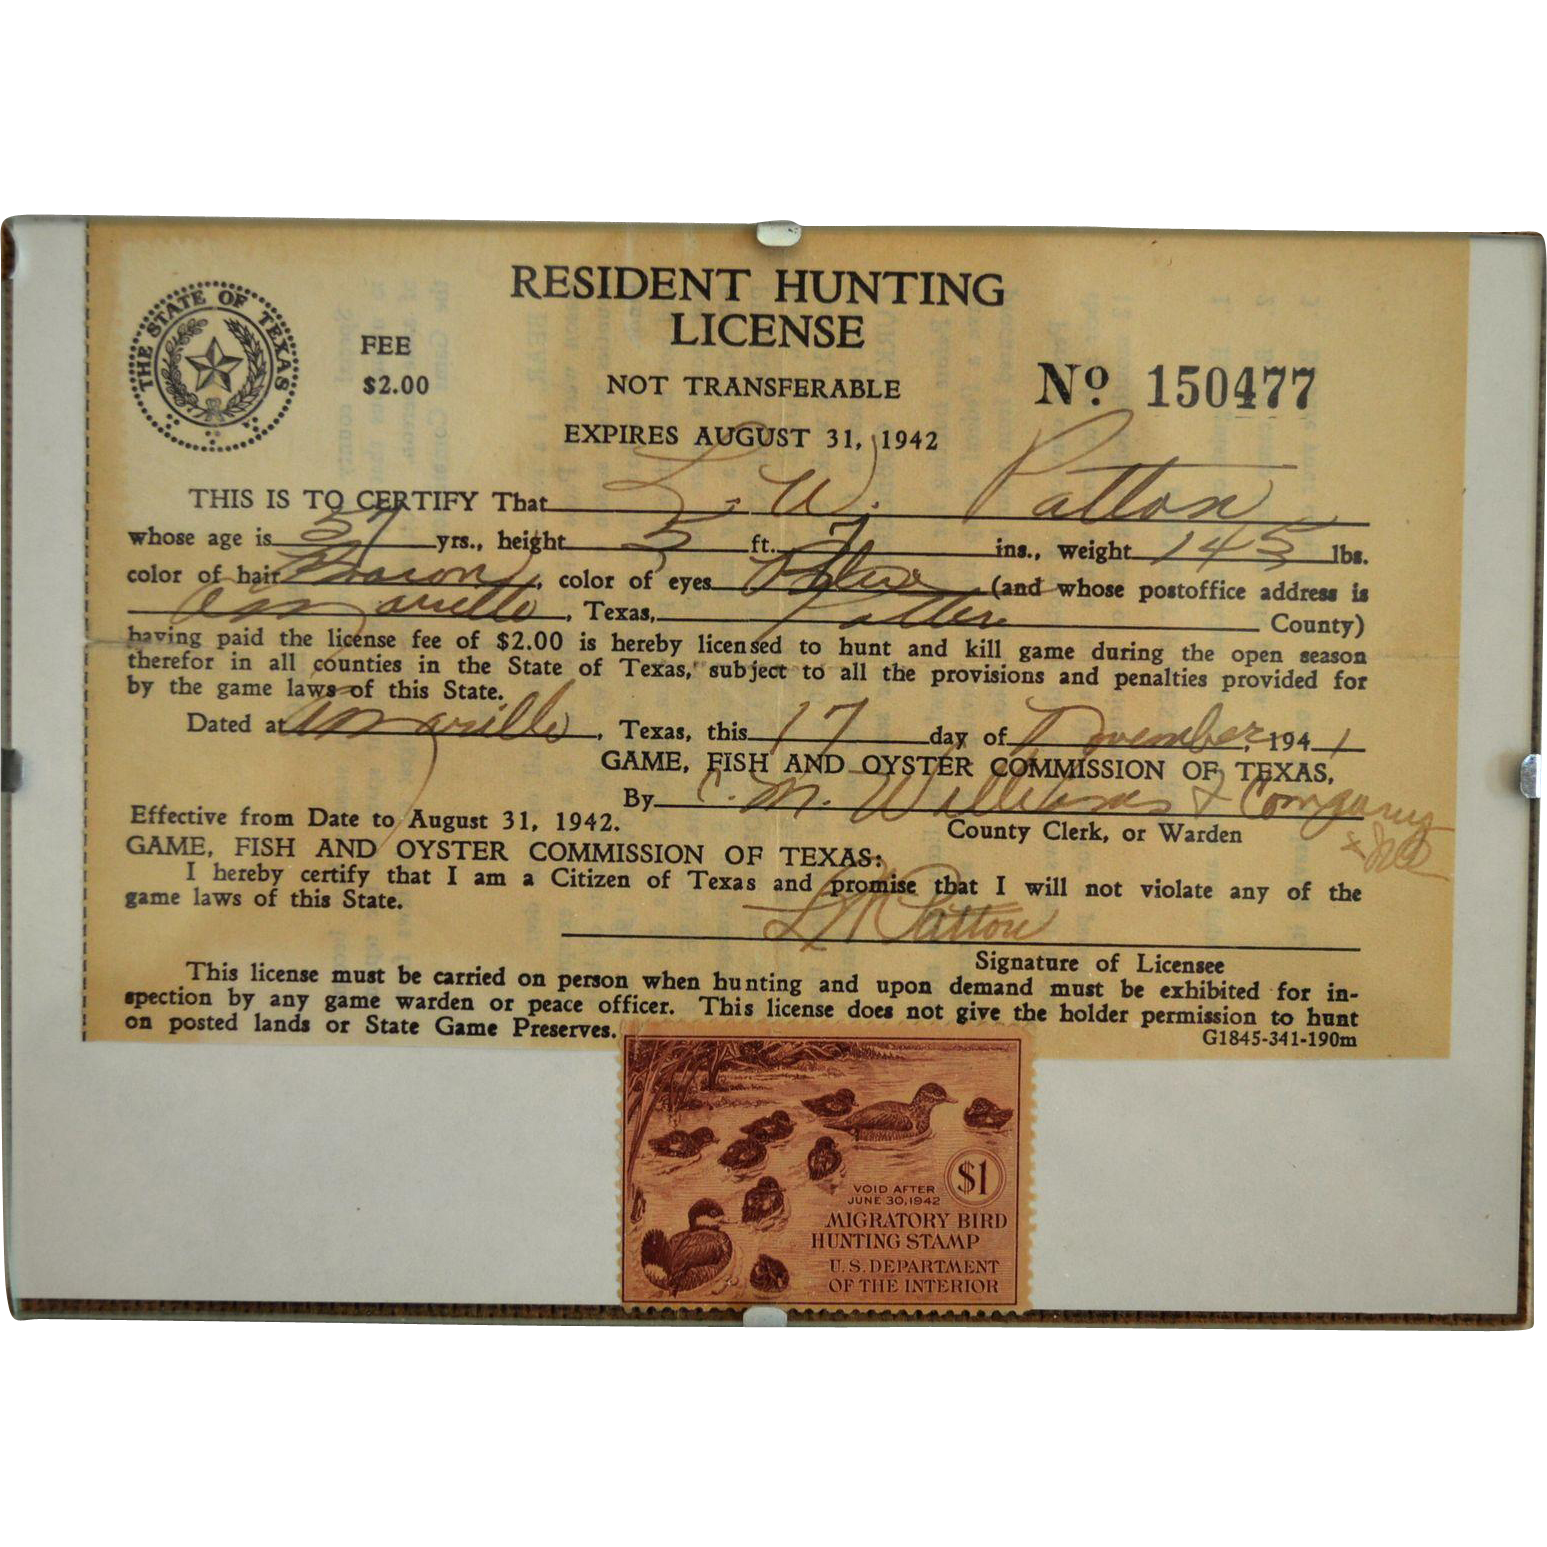 1941 Texas Hunting License / Unused Migratory Bird Hunting Stamp ~ Ruddy Ducks by Edwin Kalmbach